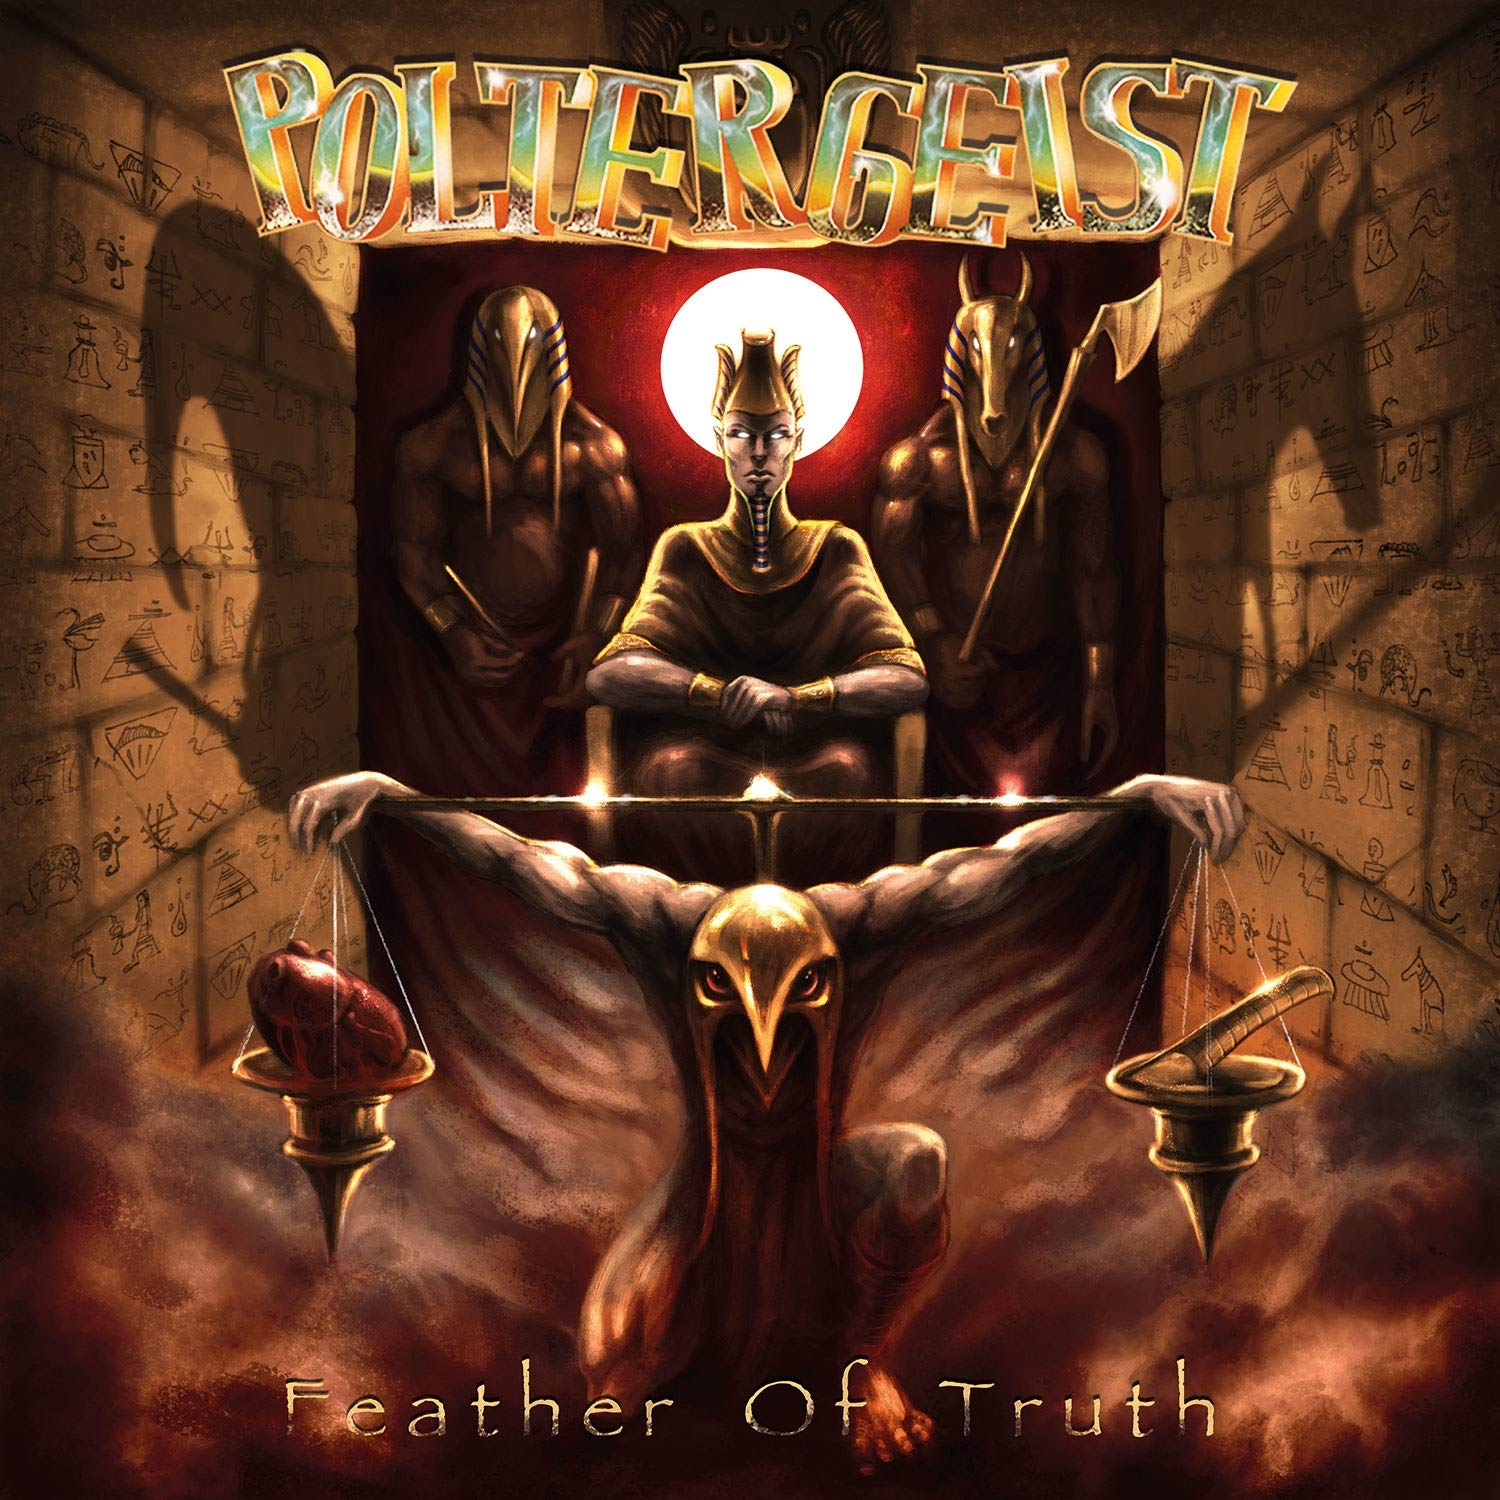 Poltergeist - Feather of Truth (2020) [FLAC] Download